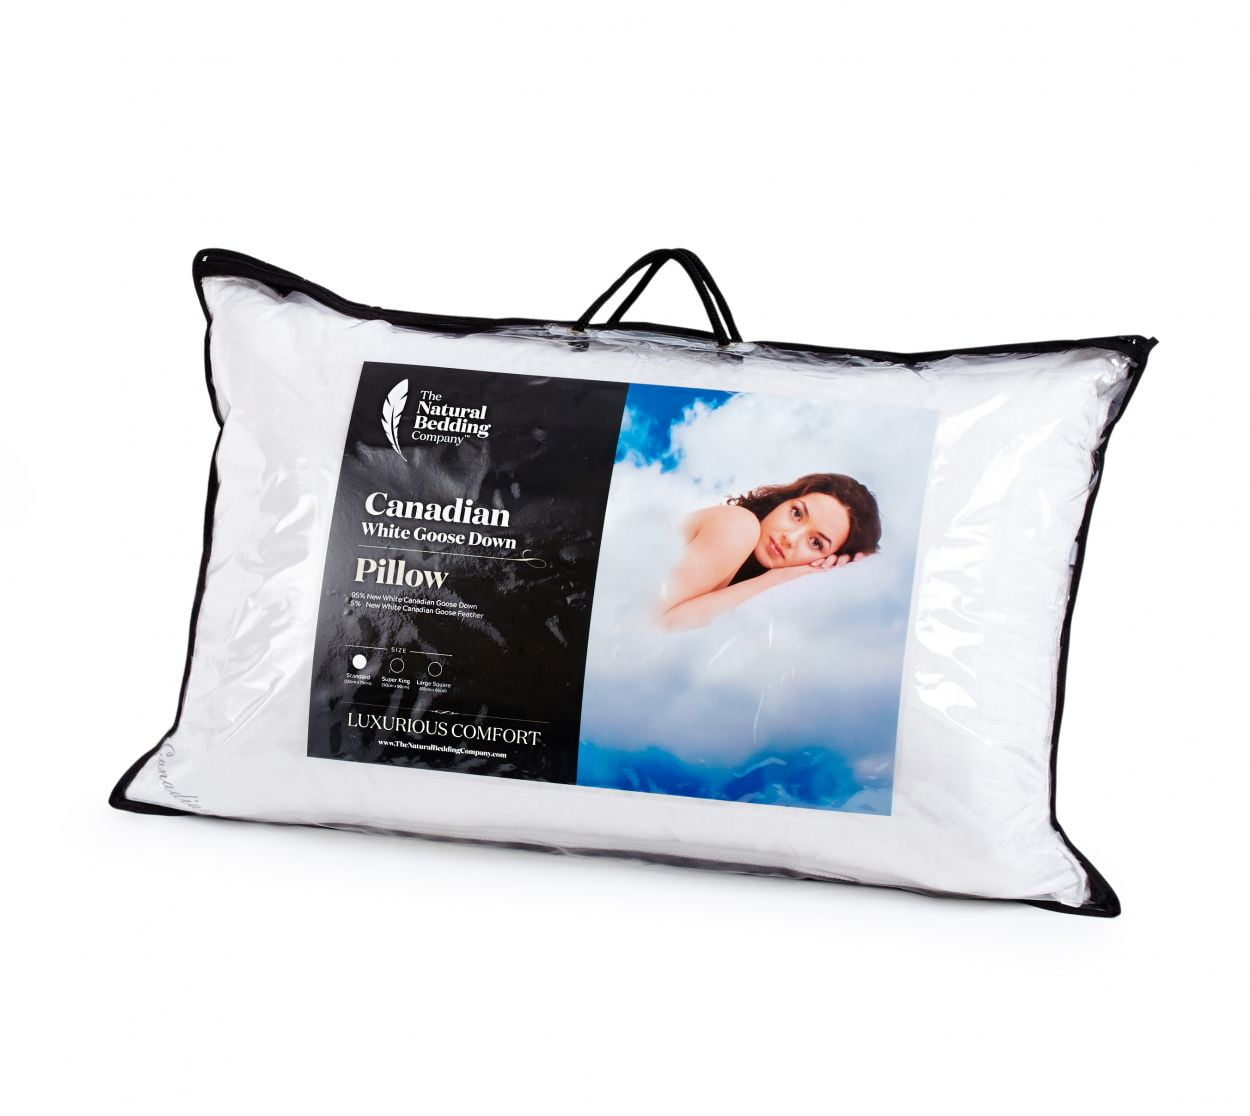 Canadian White Goose Down Pillow The Natural Bedding Company